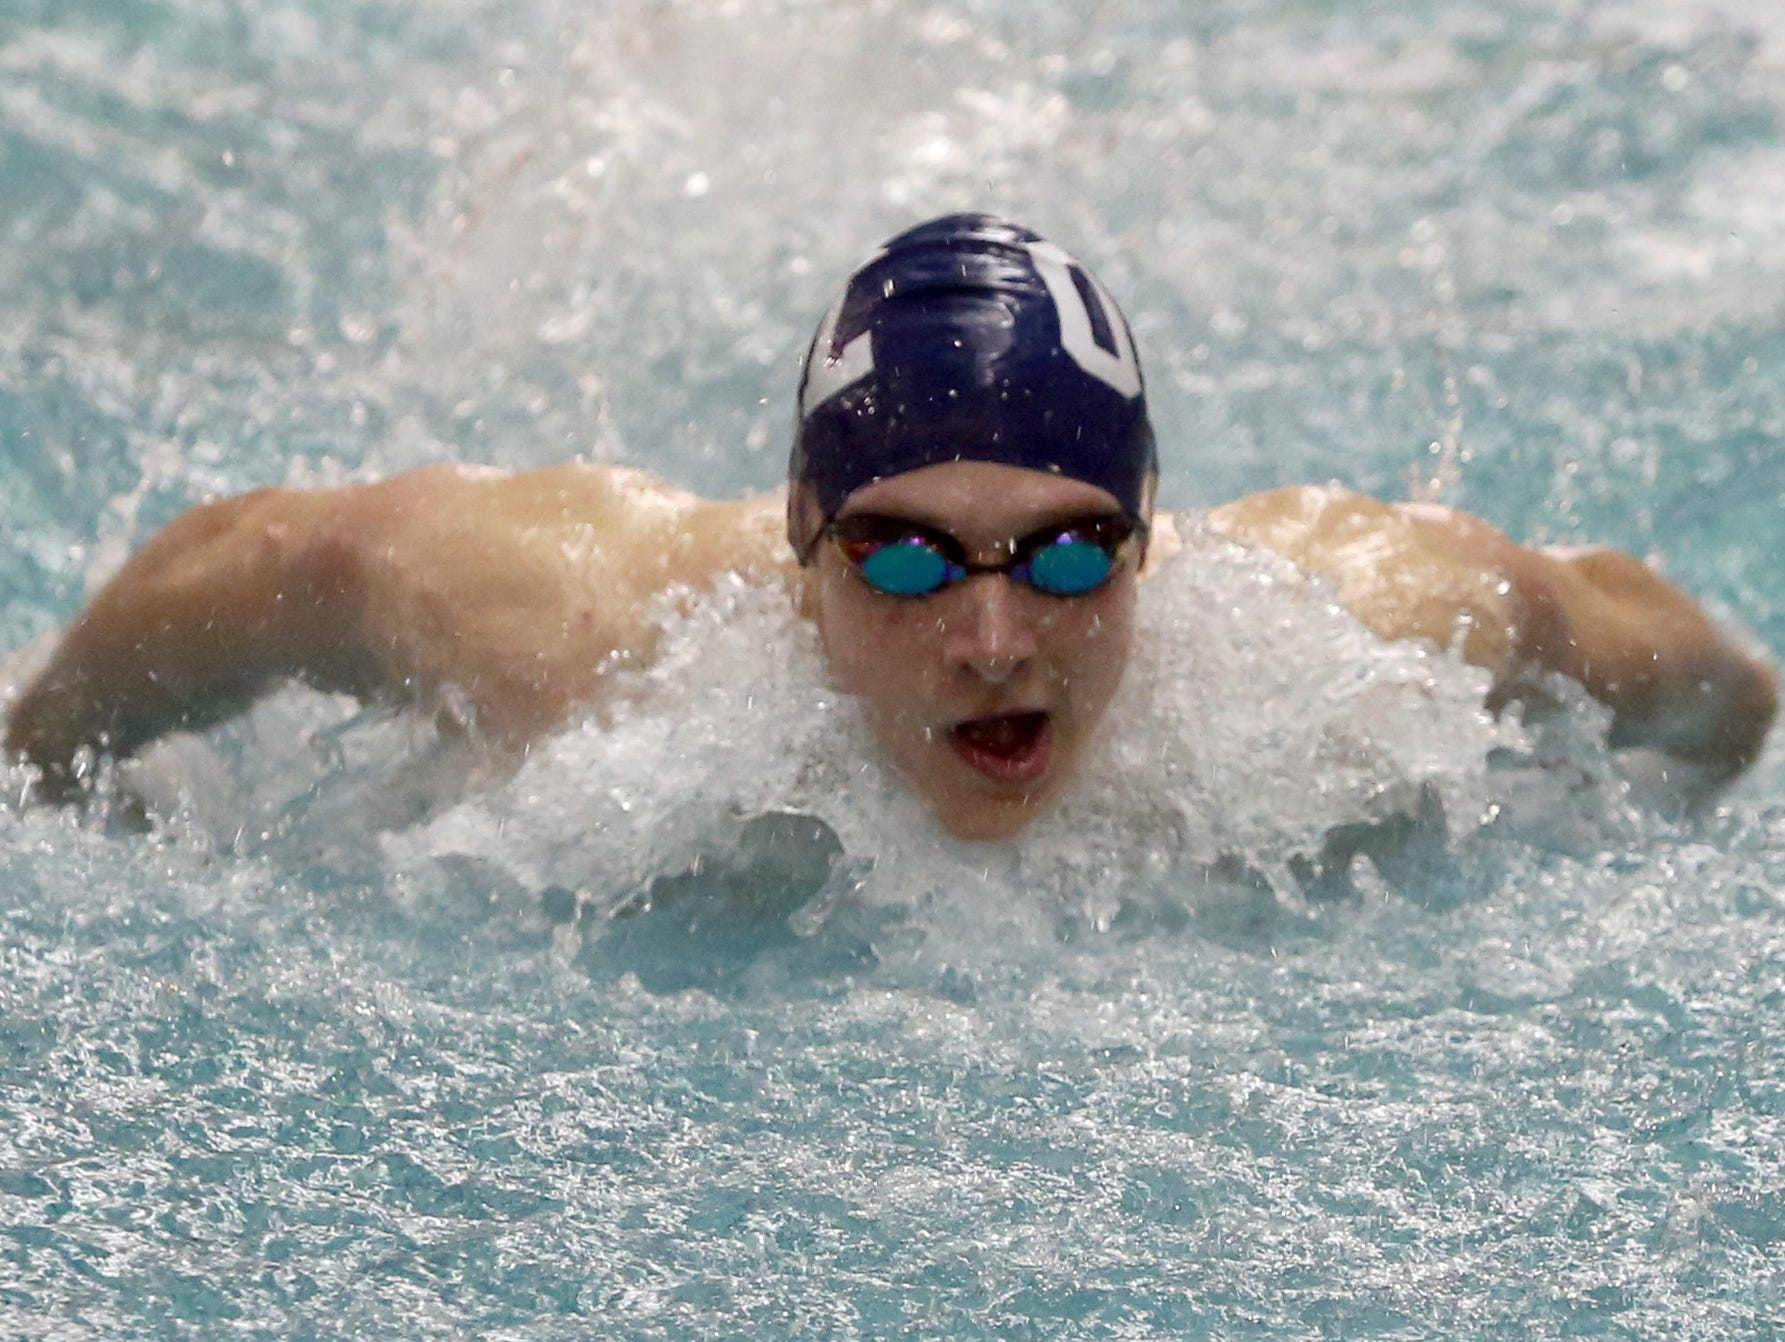 Christian Thomas of Our Lady of Lourdes competes in the 200-yard individual medley event at the Section 1 swimming championships at Felix Festa Middle School in West Nyack on Wednesday. Thomas finished in second place.